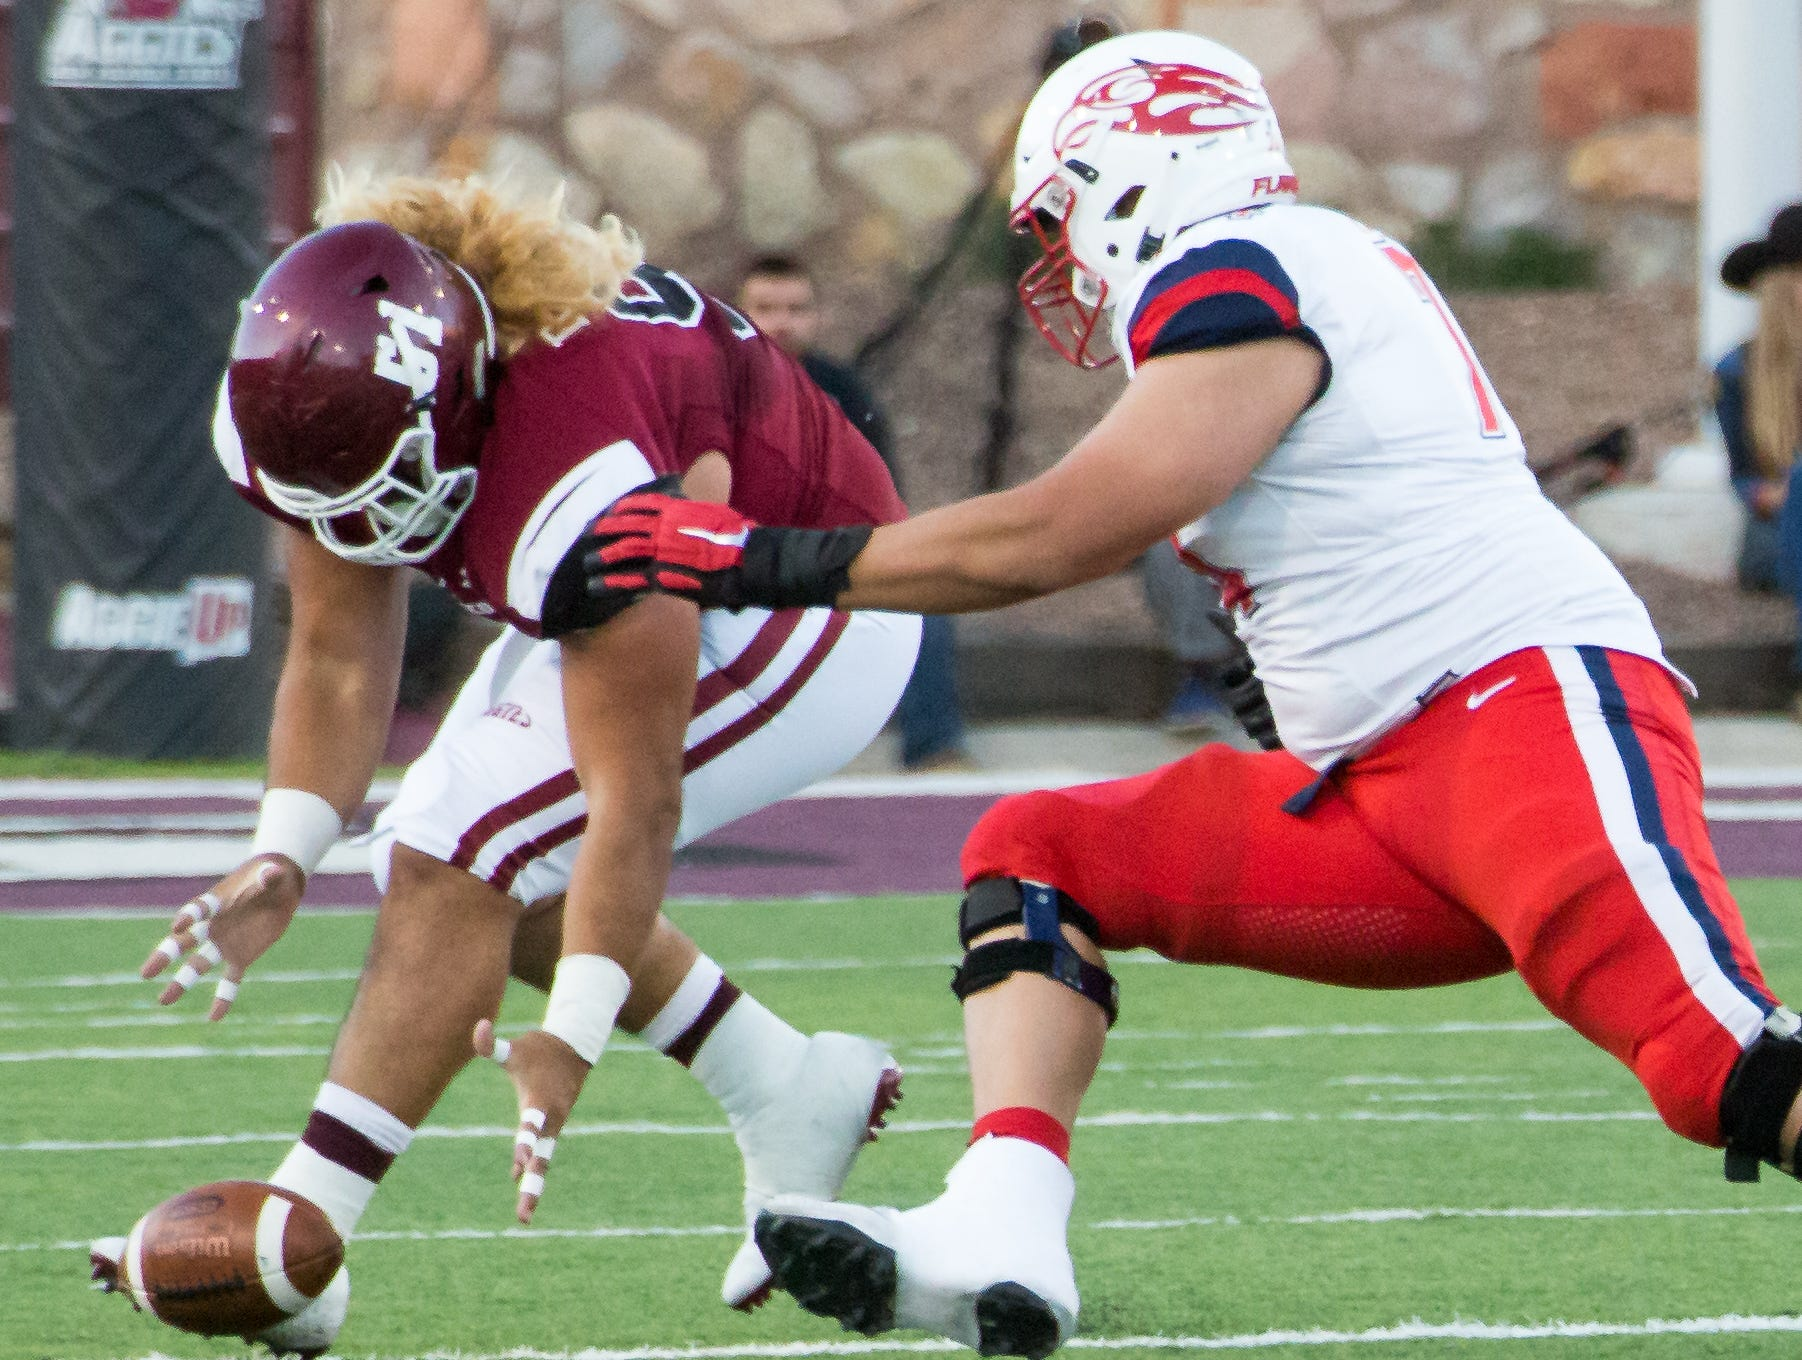 NMSU's Roy Lopez picks up a fumble on Saturday, Oct. 6, 2018 at Aggie Memorial Stadium as Liberty's Julio Lozano also tries to go for the ball.